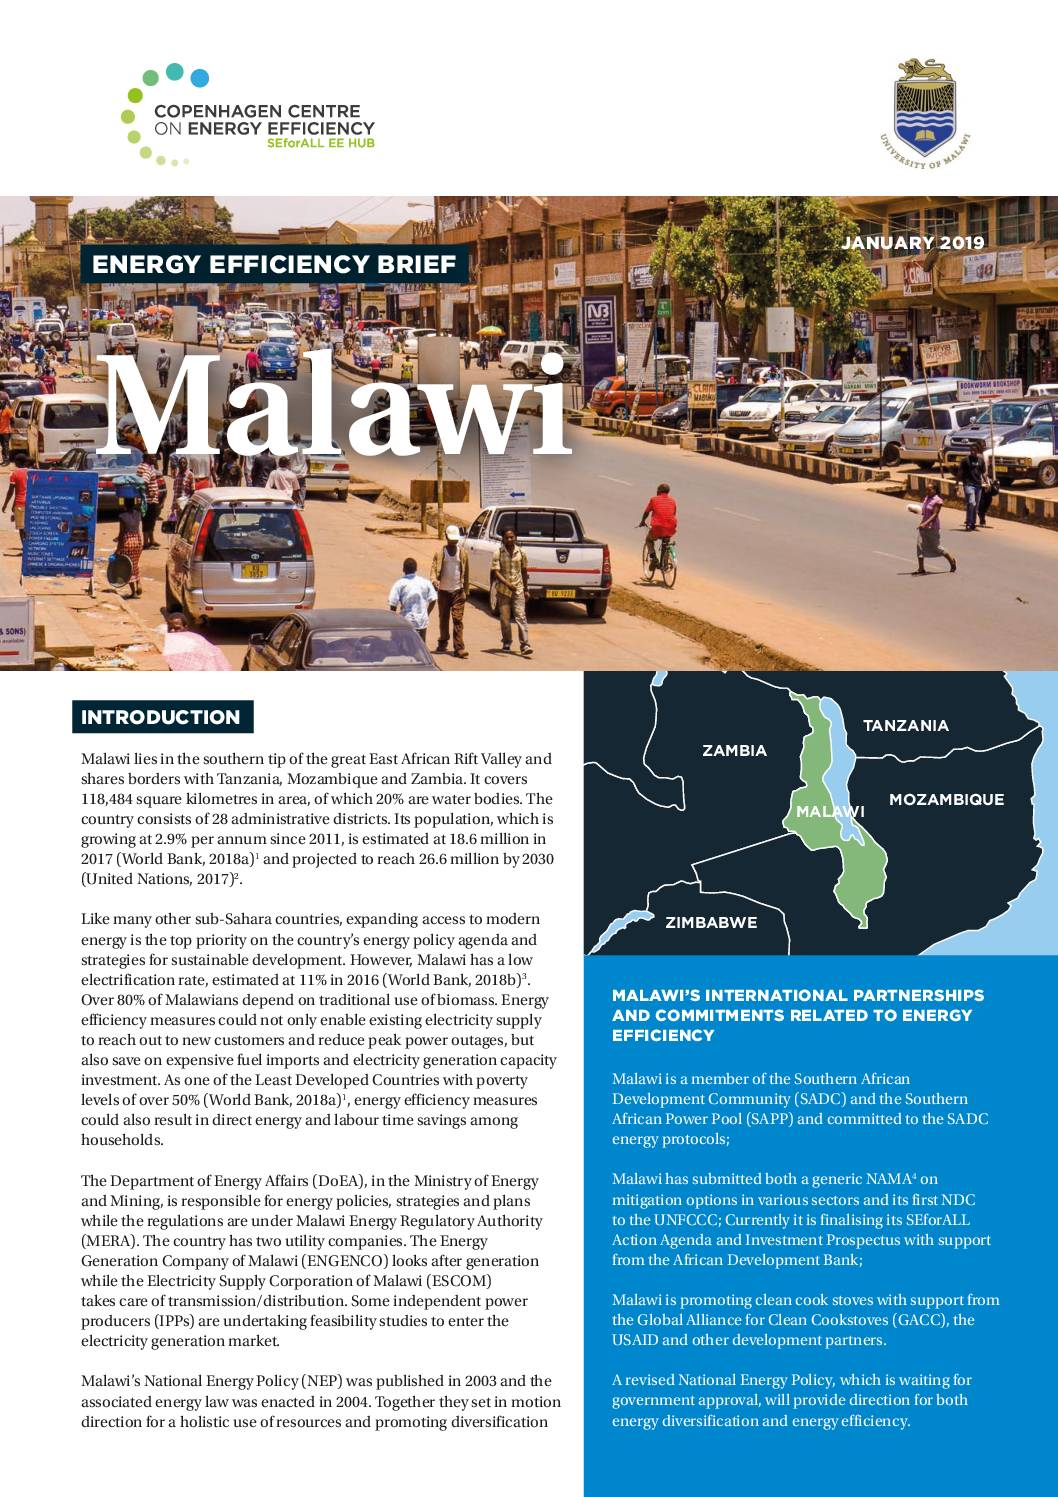 Energy Efficiency Brief, Malawi